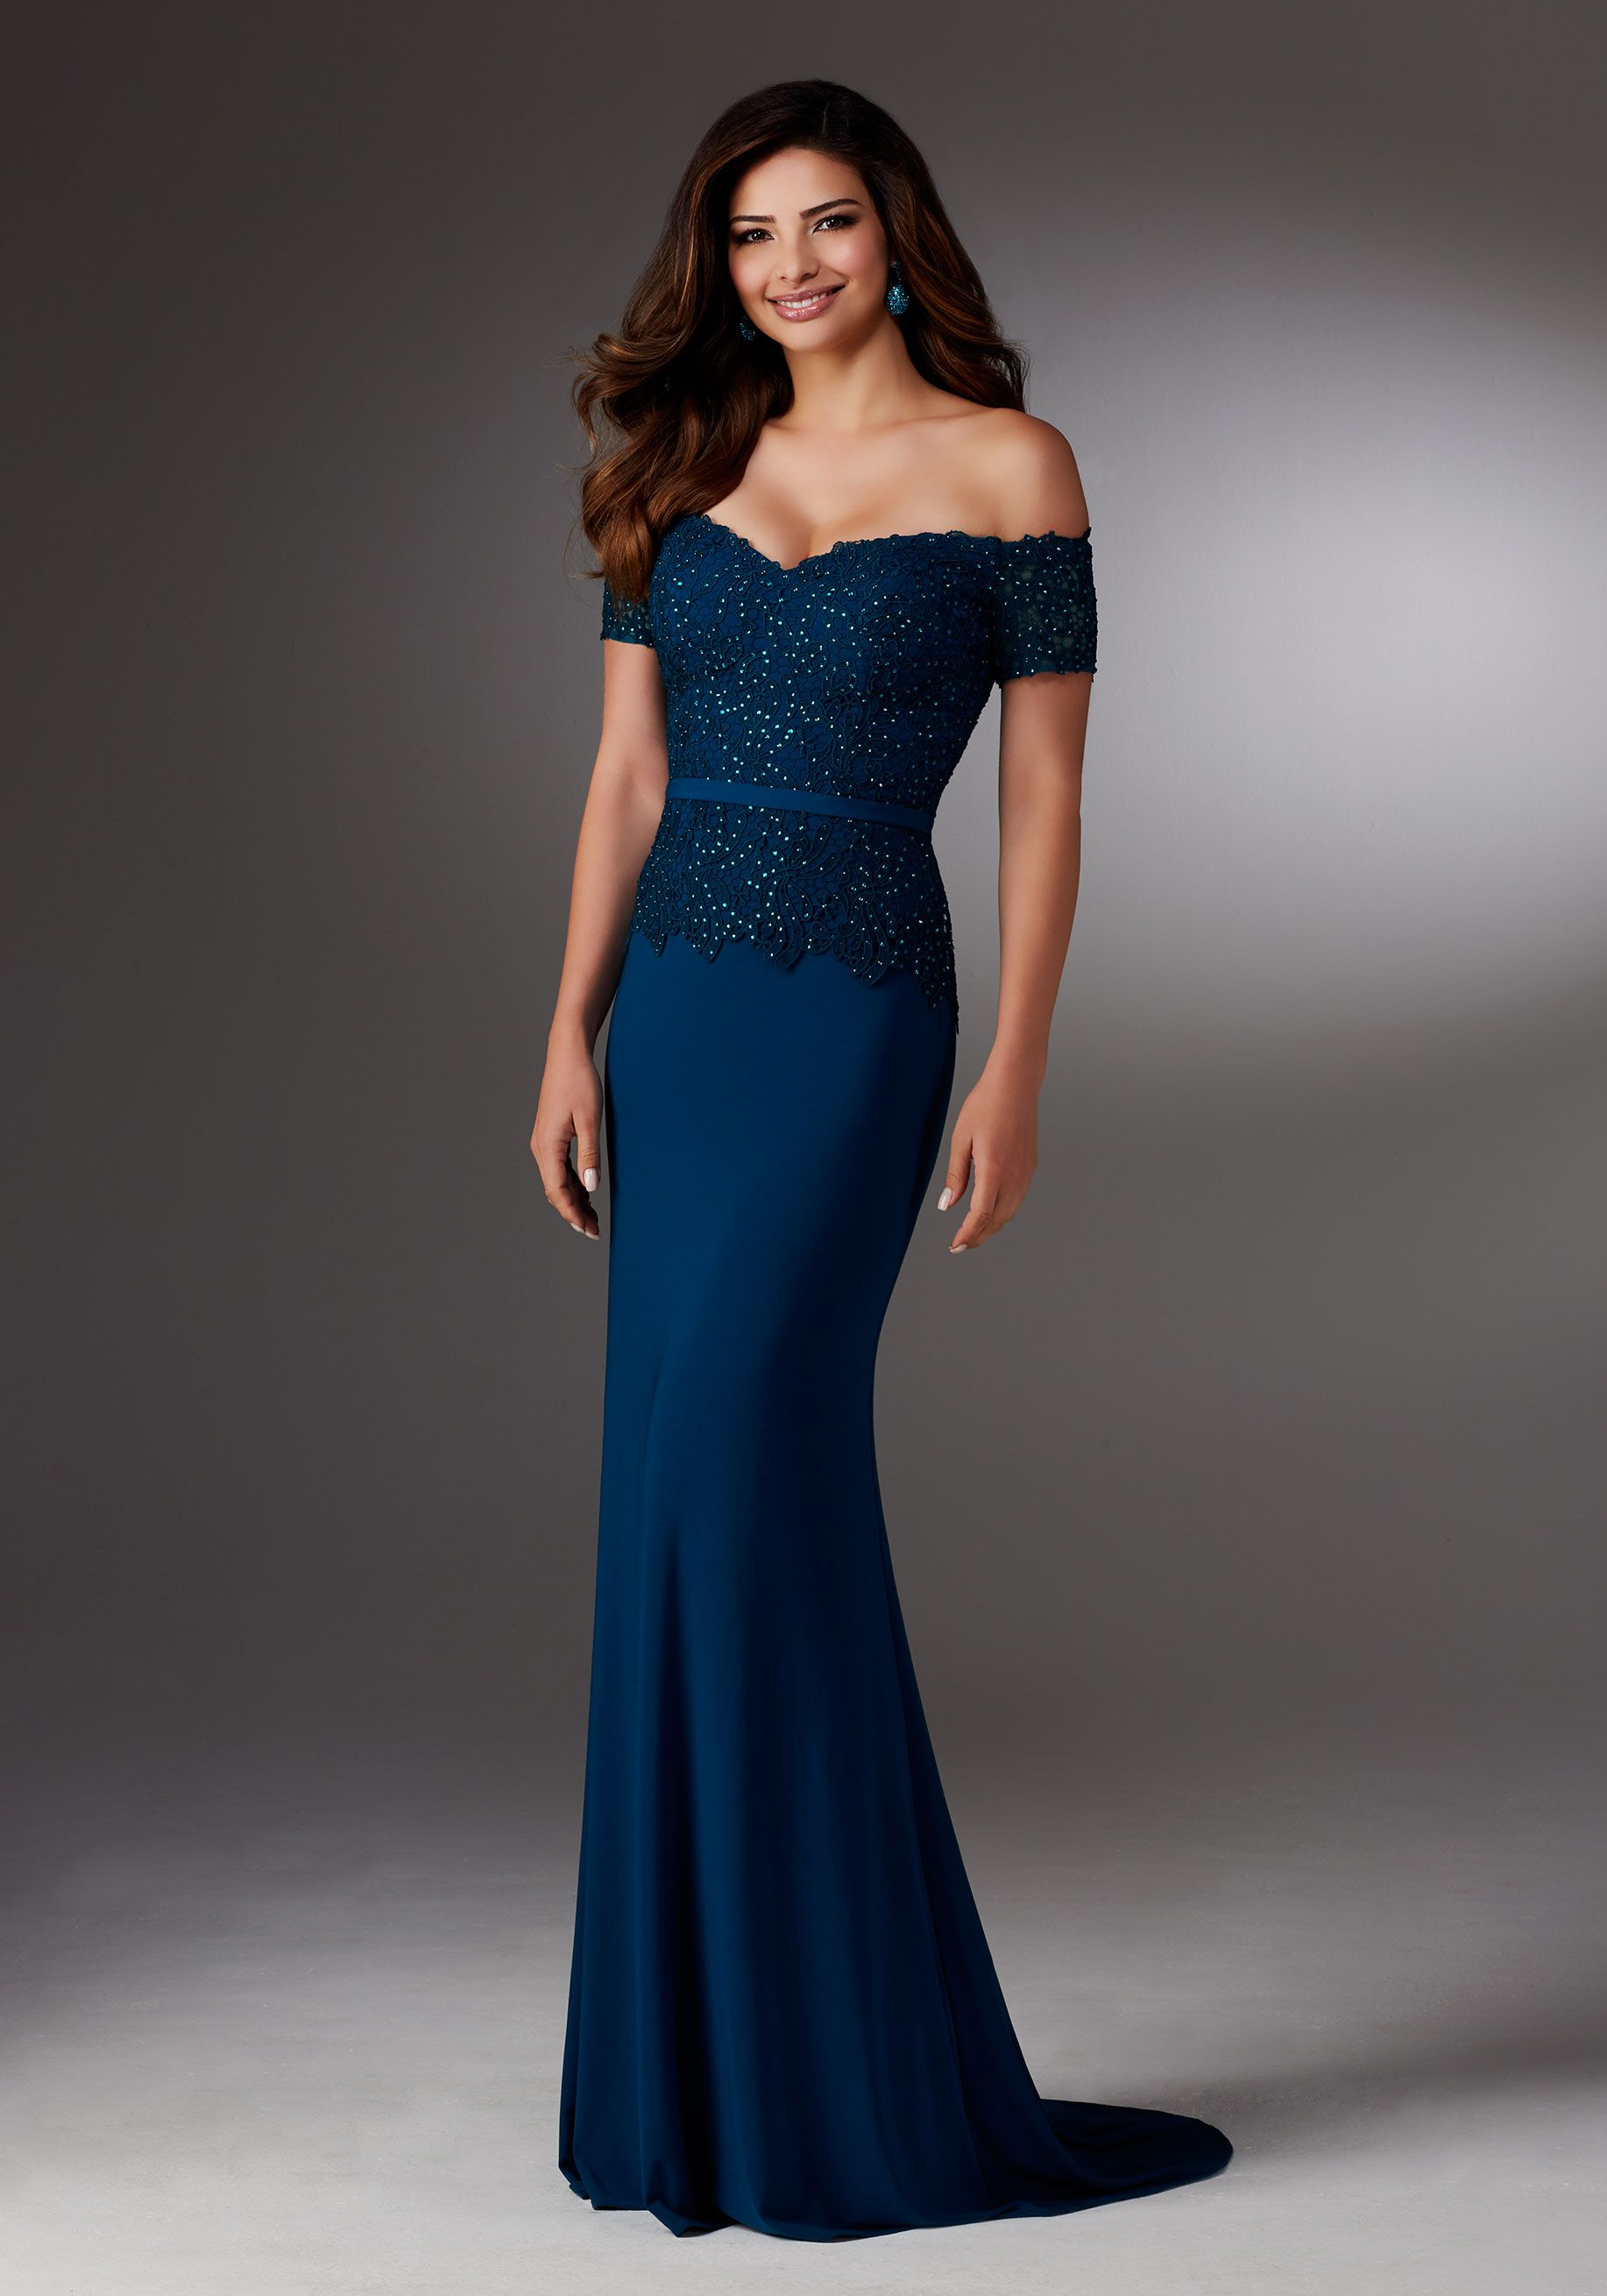 ed5ecc34d552b Evening Dresses and Mother of the Bride Dresses by Morilee. Form Fitting Jersey  Dress with Off-the-Shoulder Beaded Lace Bodice and Removable Jersey Belt.